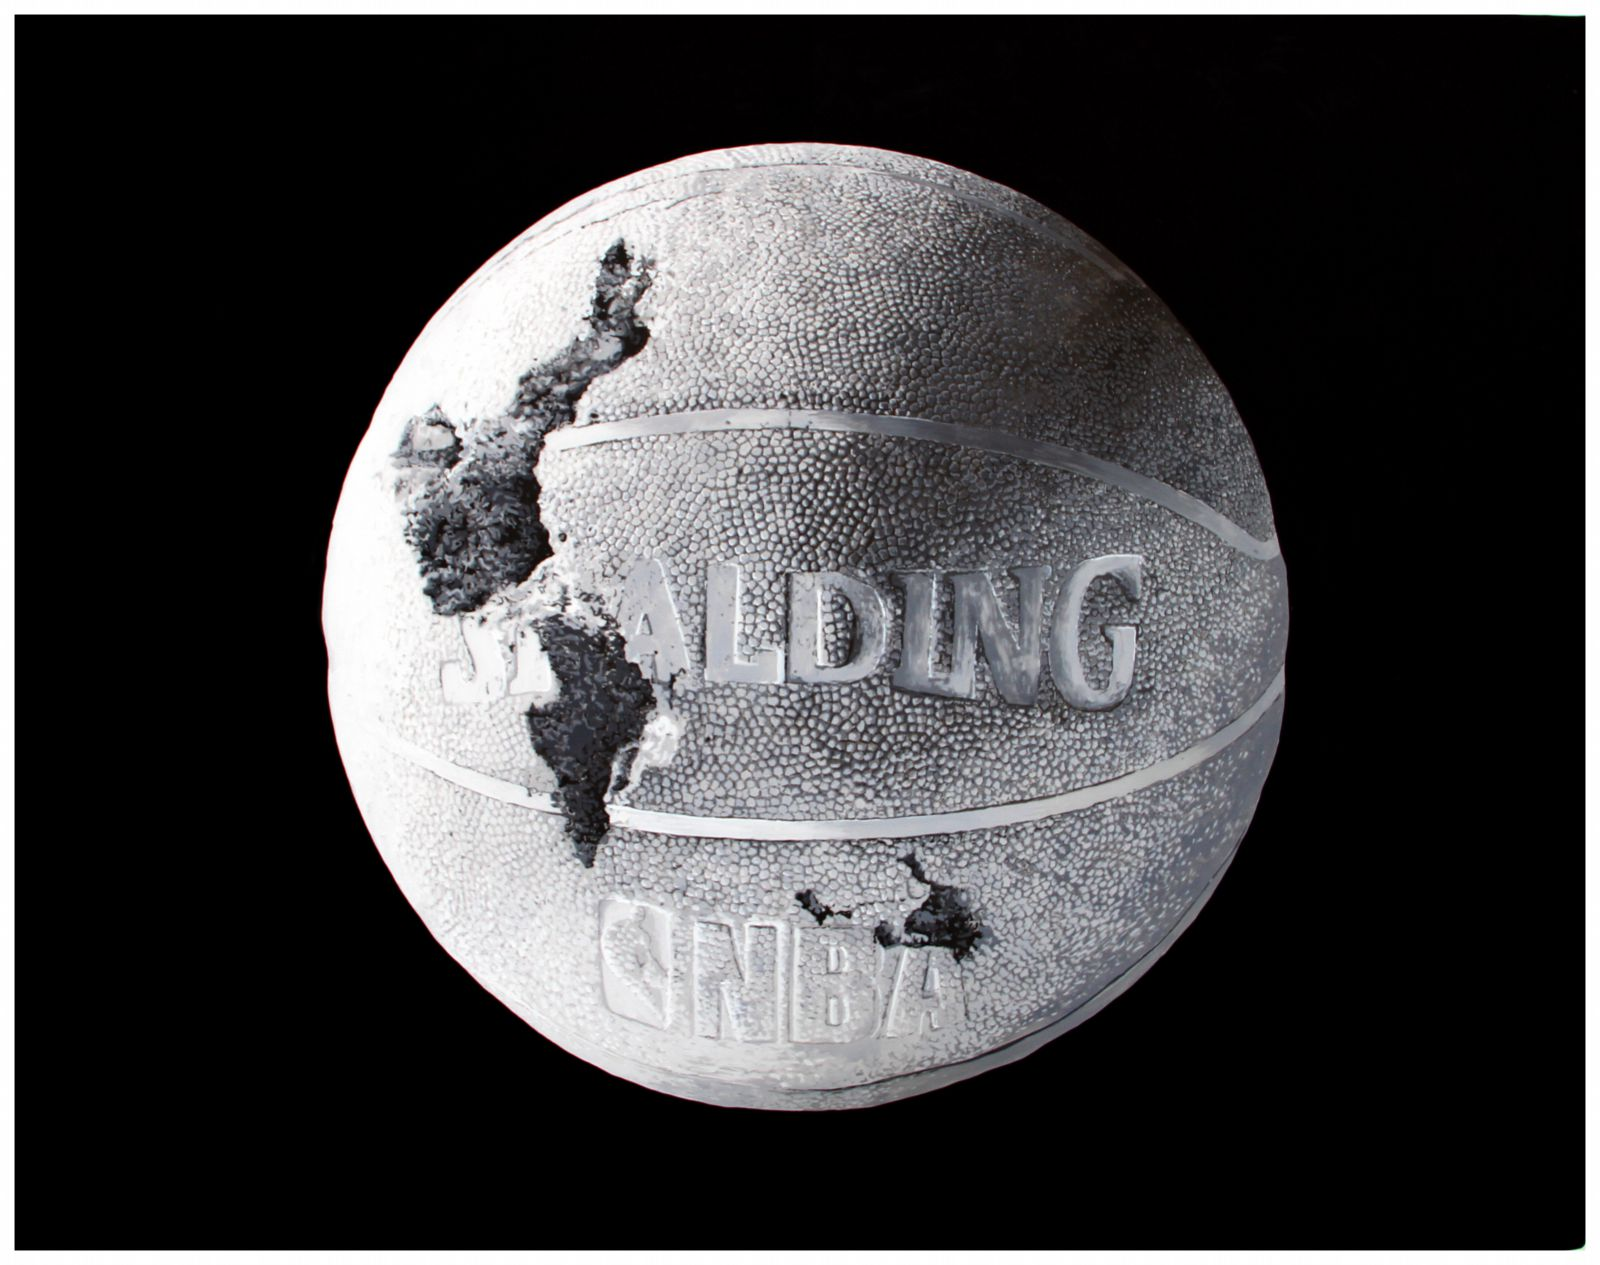 Study of the Eroded Basketball